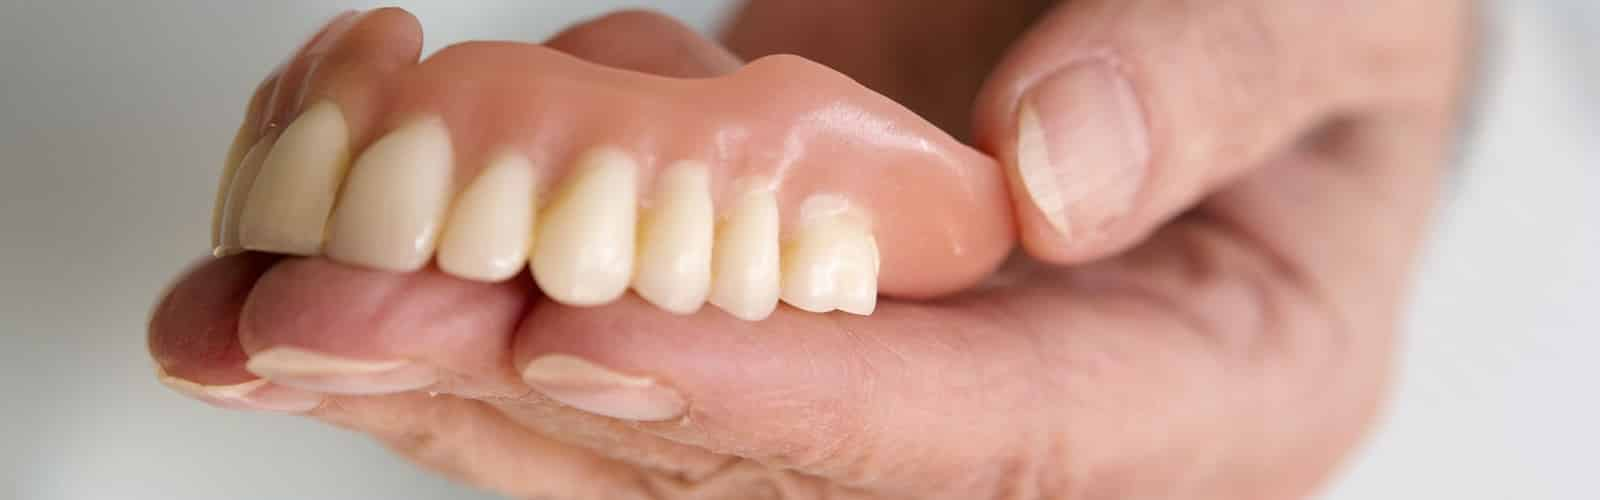 everything-you-need-to-know-about-dentures